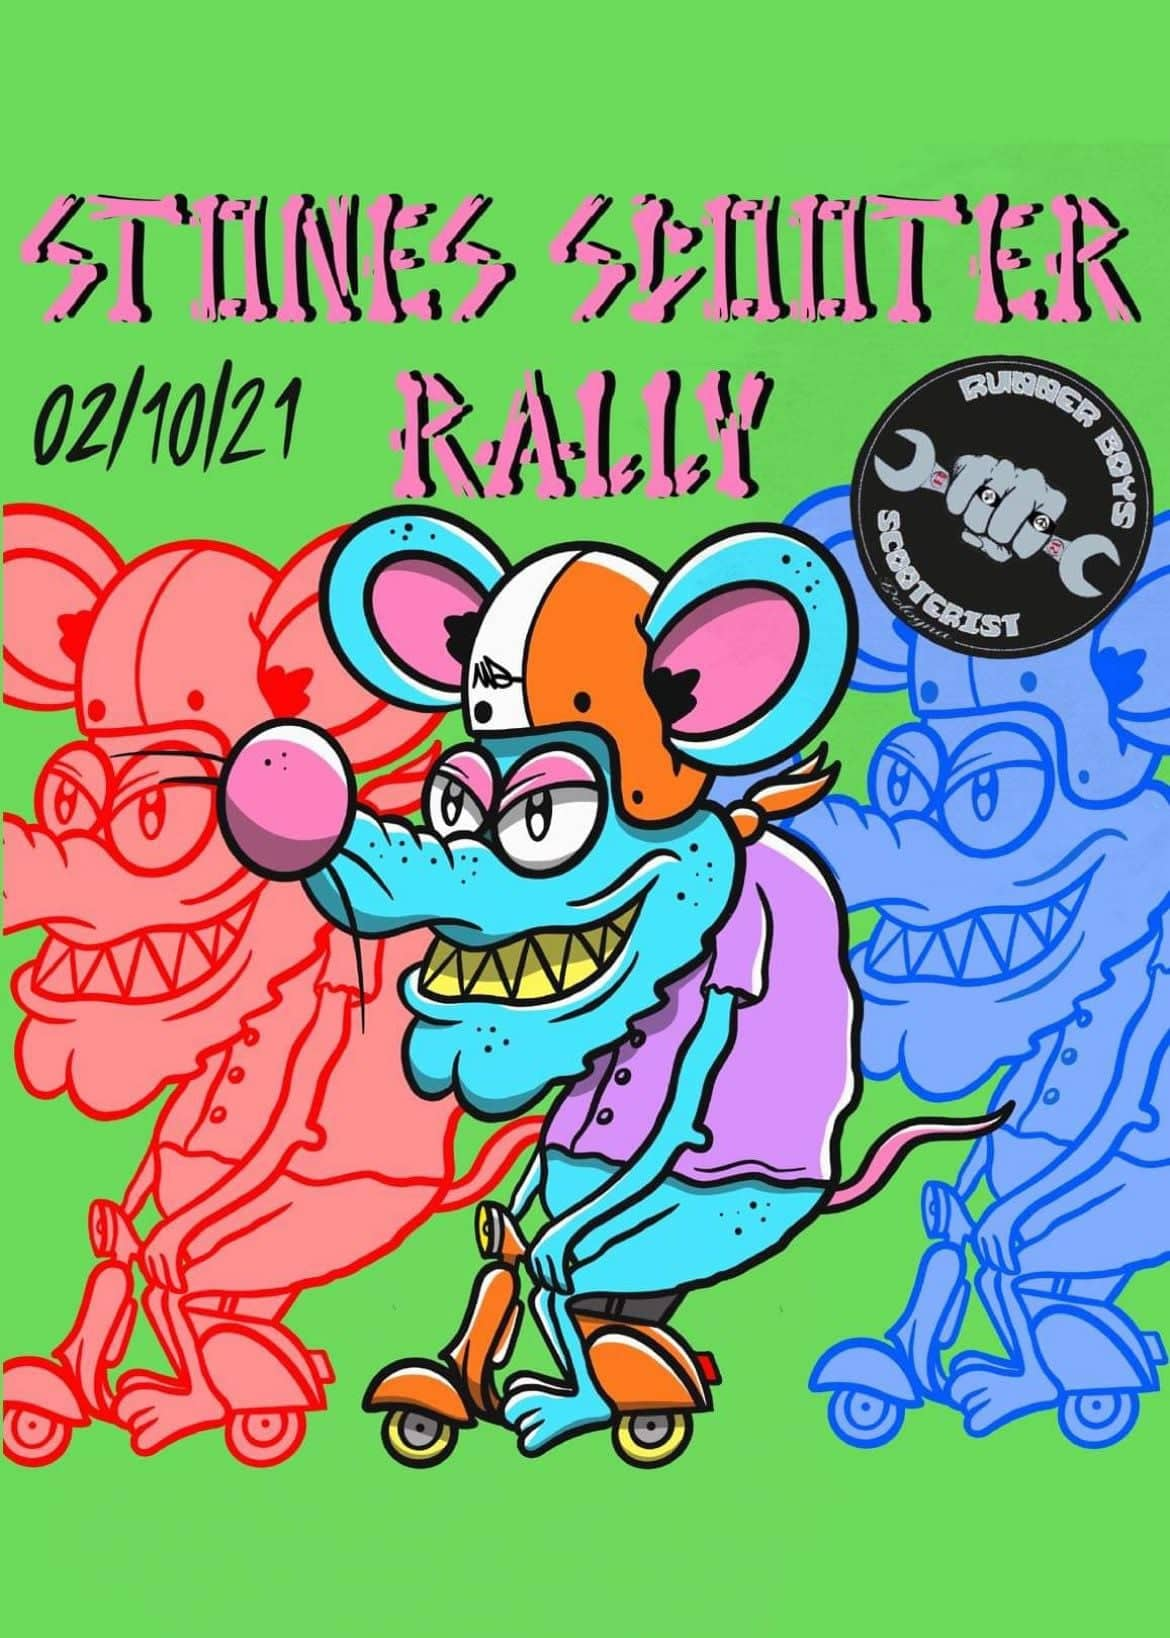 stoner scooter rally